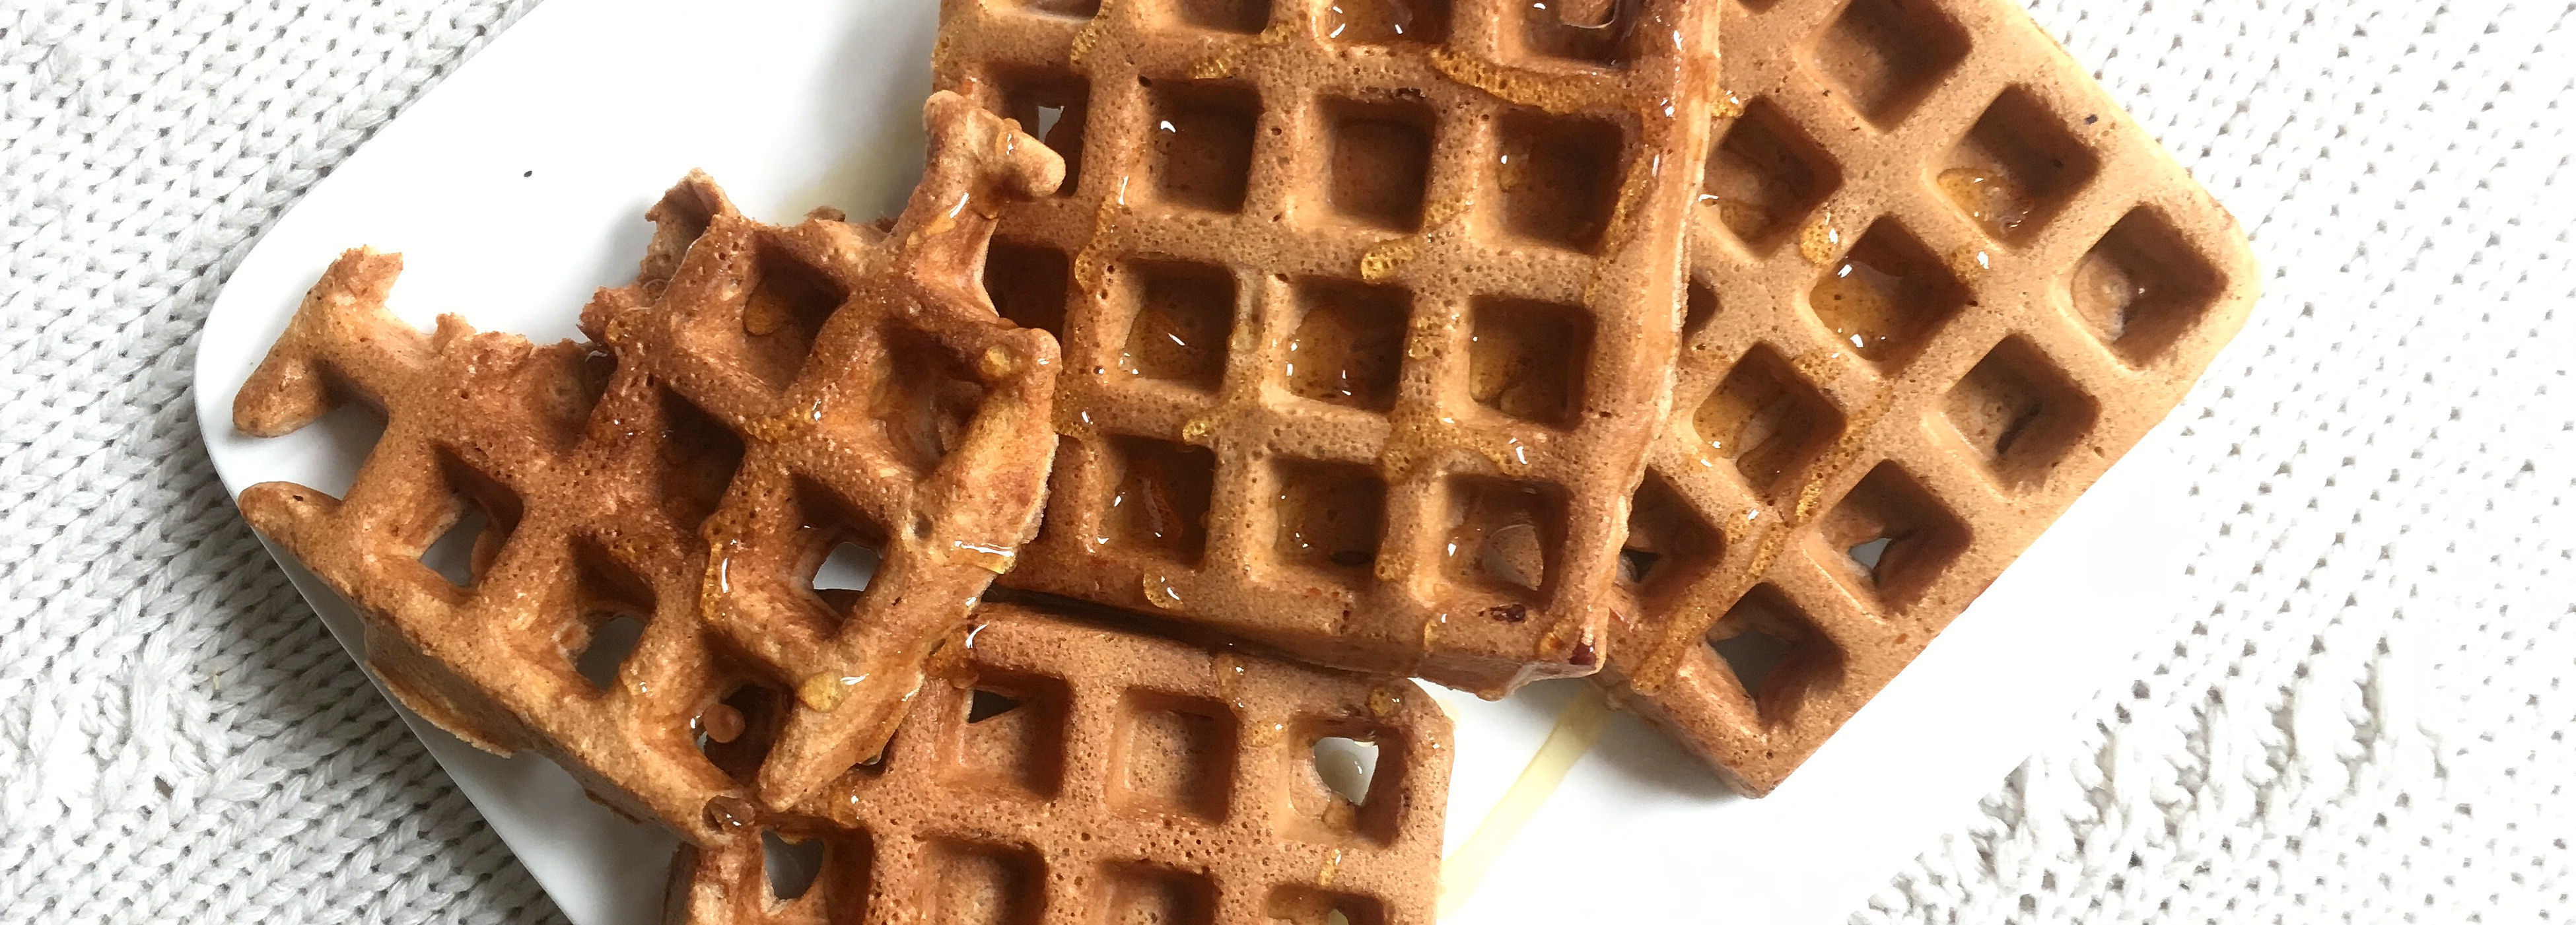 Winterse wafels